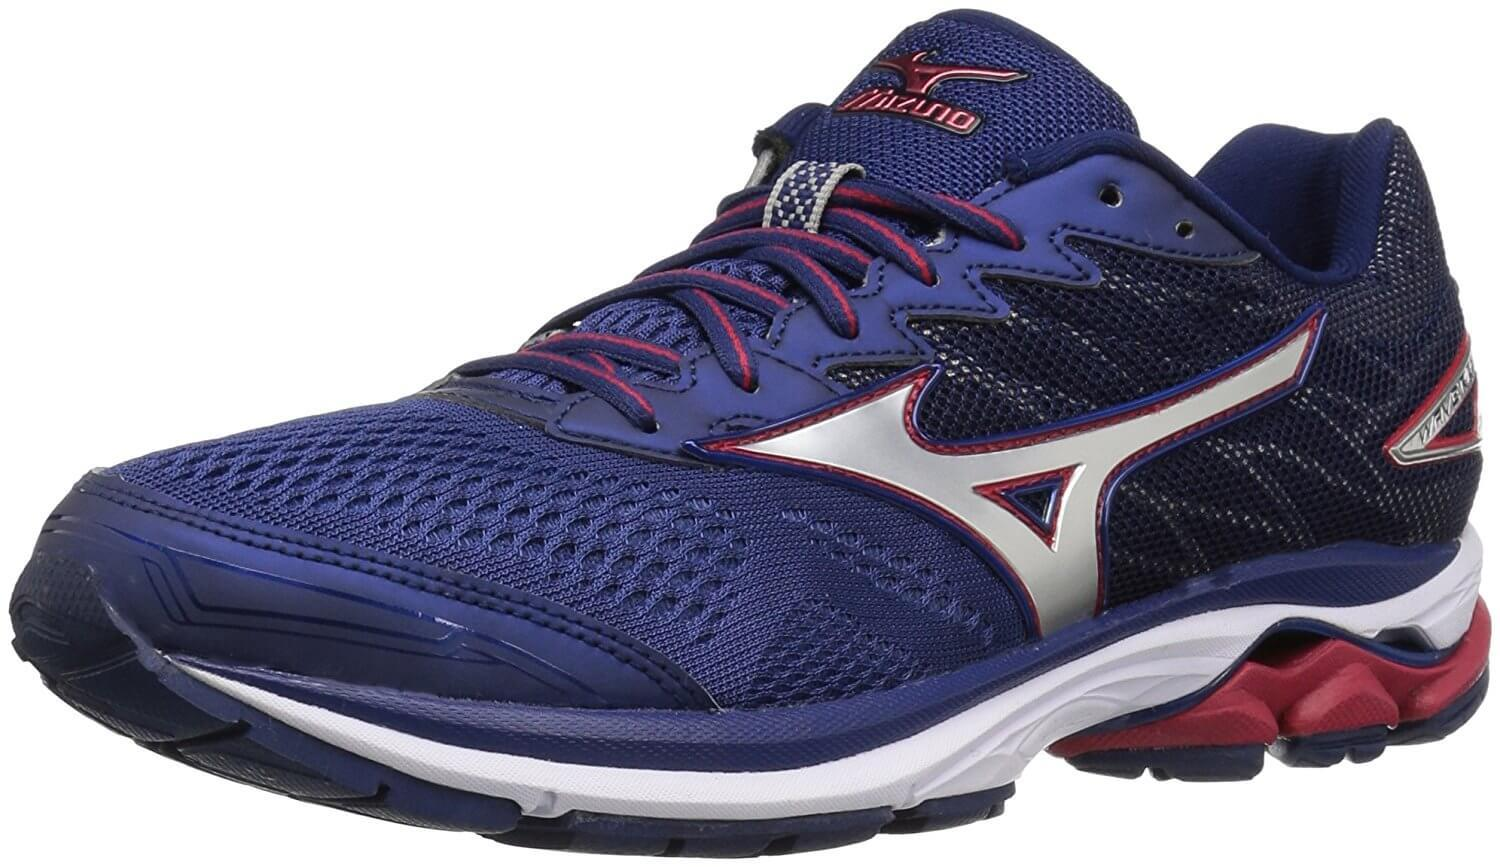 Best Running Shoes For Bad Knees >> 10 Best Mizuno Running Shoes Reviewed in 2017 | RunnerClick